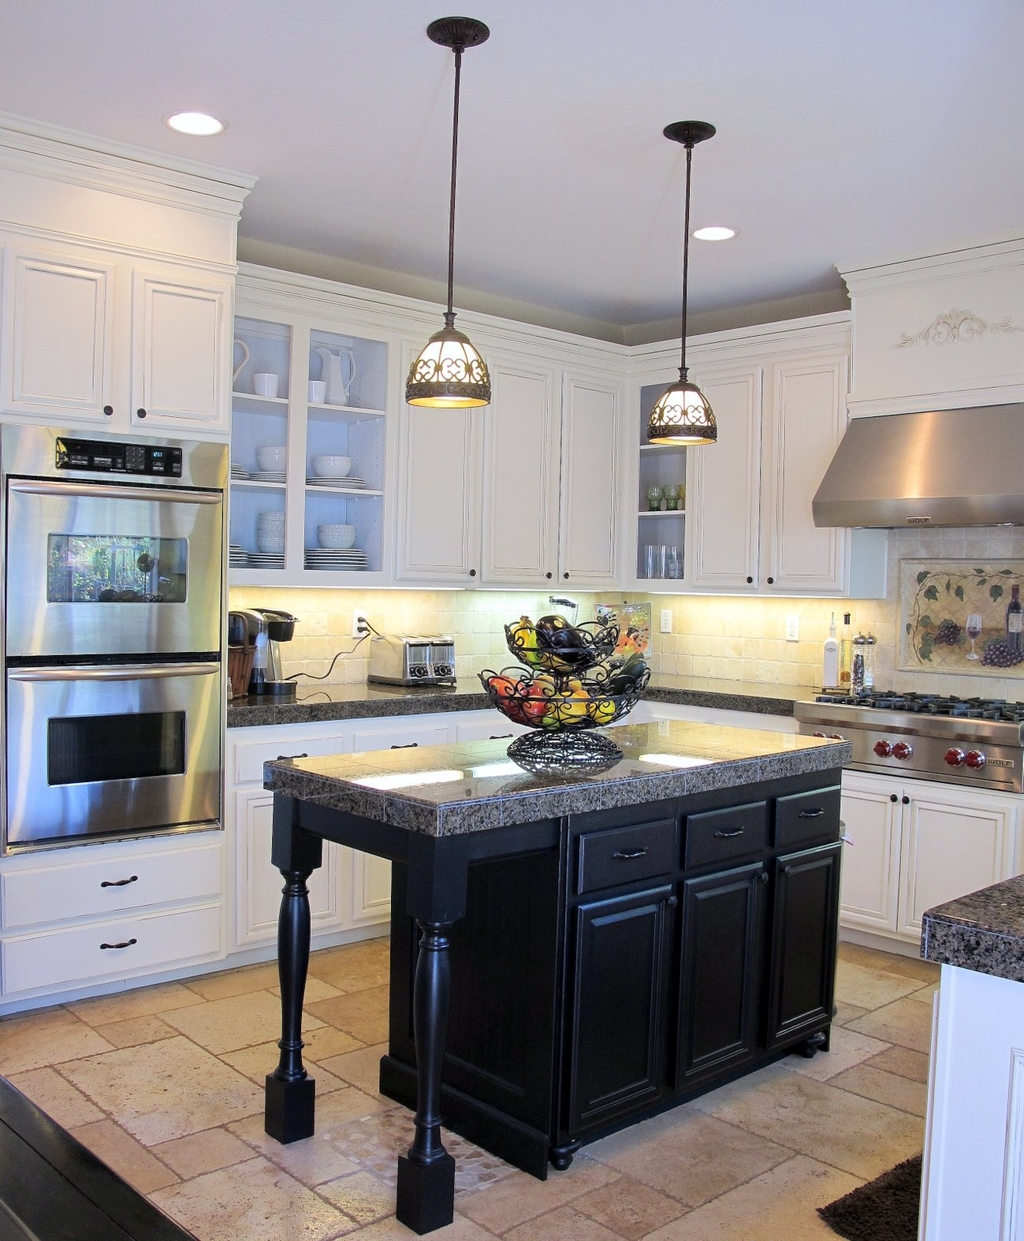 Contemporary Small Kitchen Countertops With White Cabinets (Image 2 of 12)